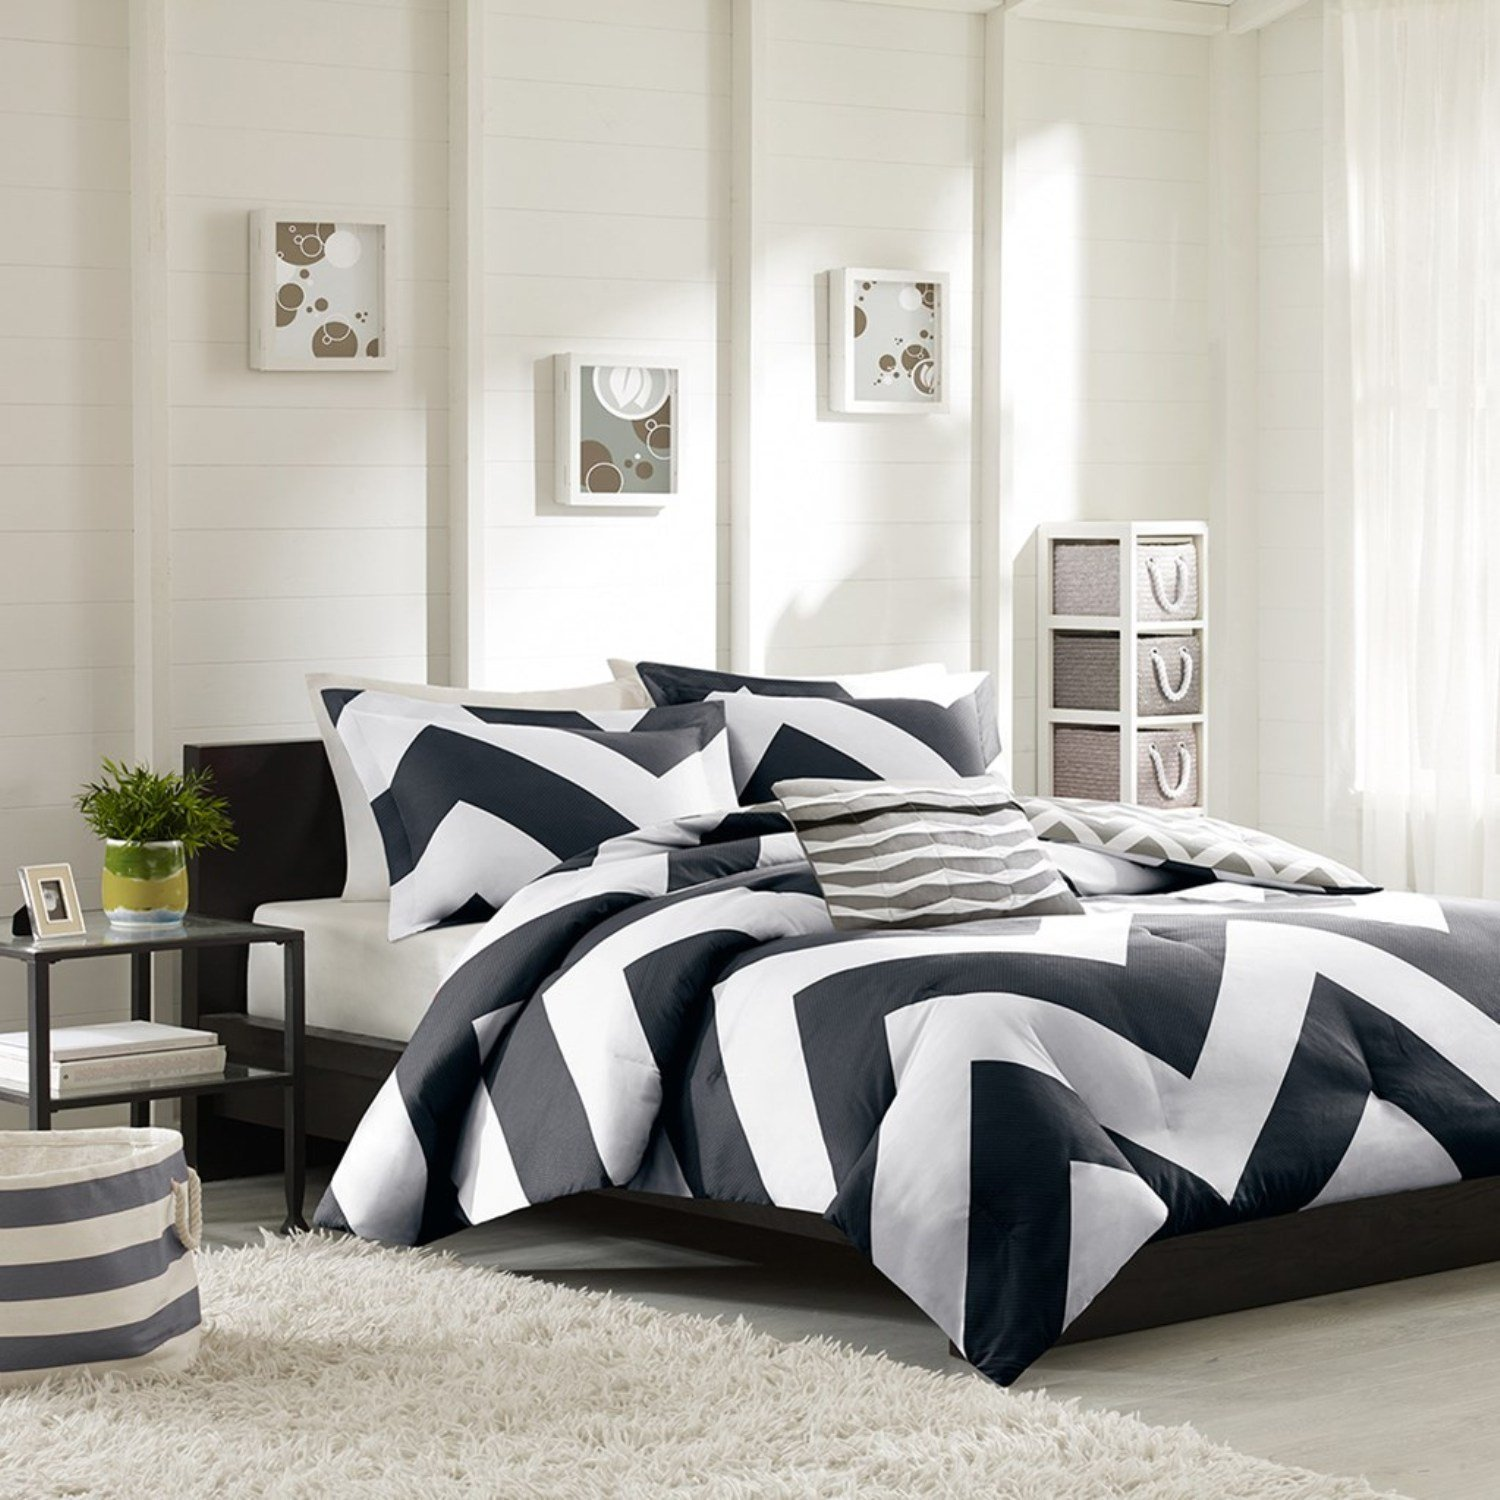 Black and white striped bed sheets - Mi Zone Libra Comforter Set Black Full Queen